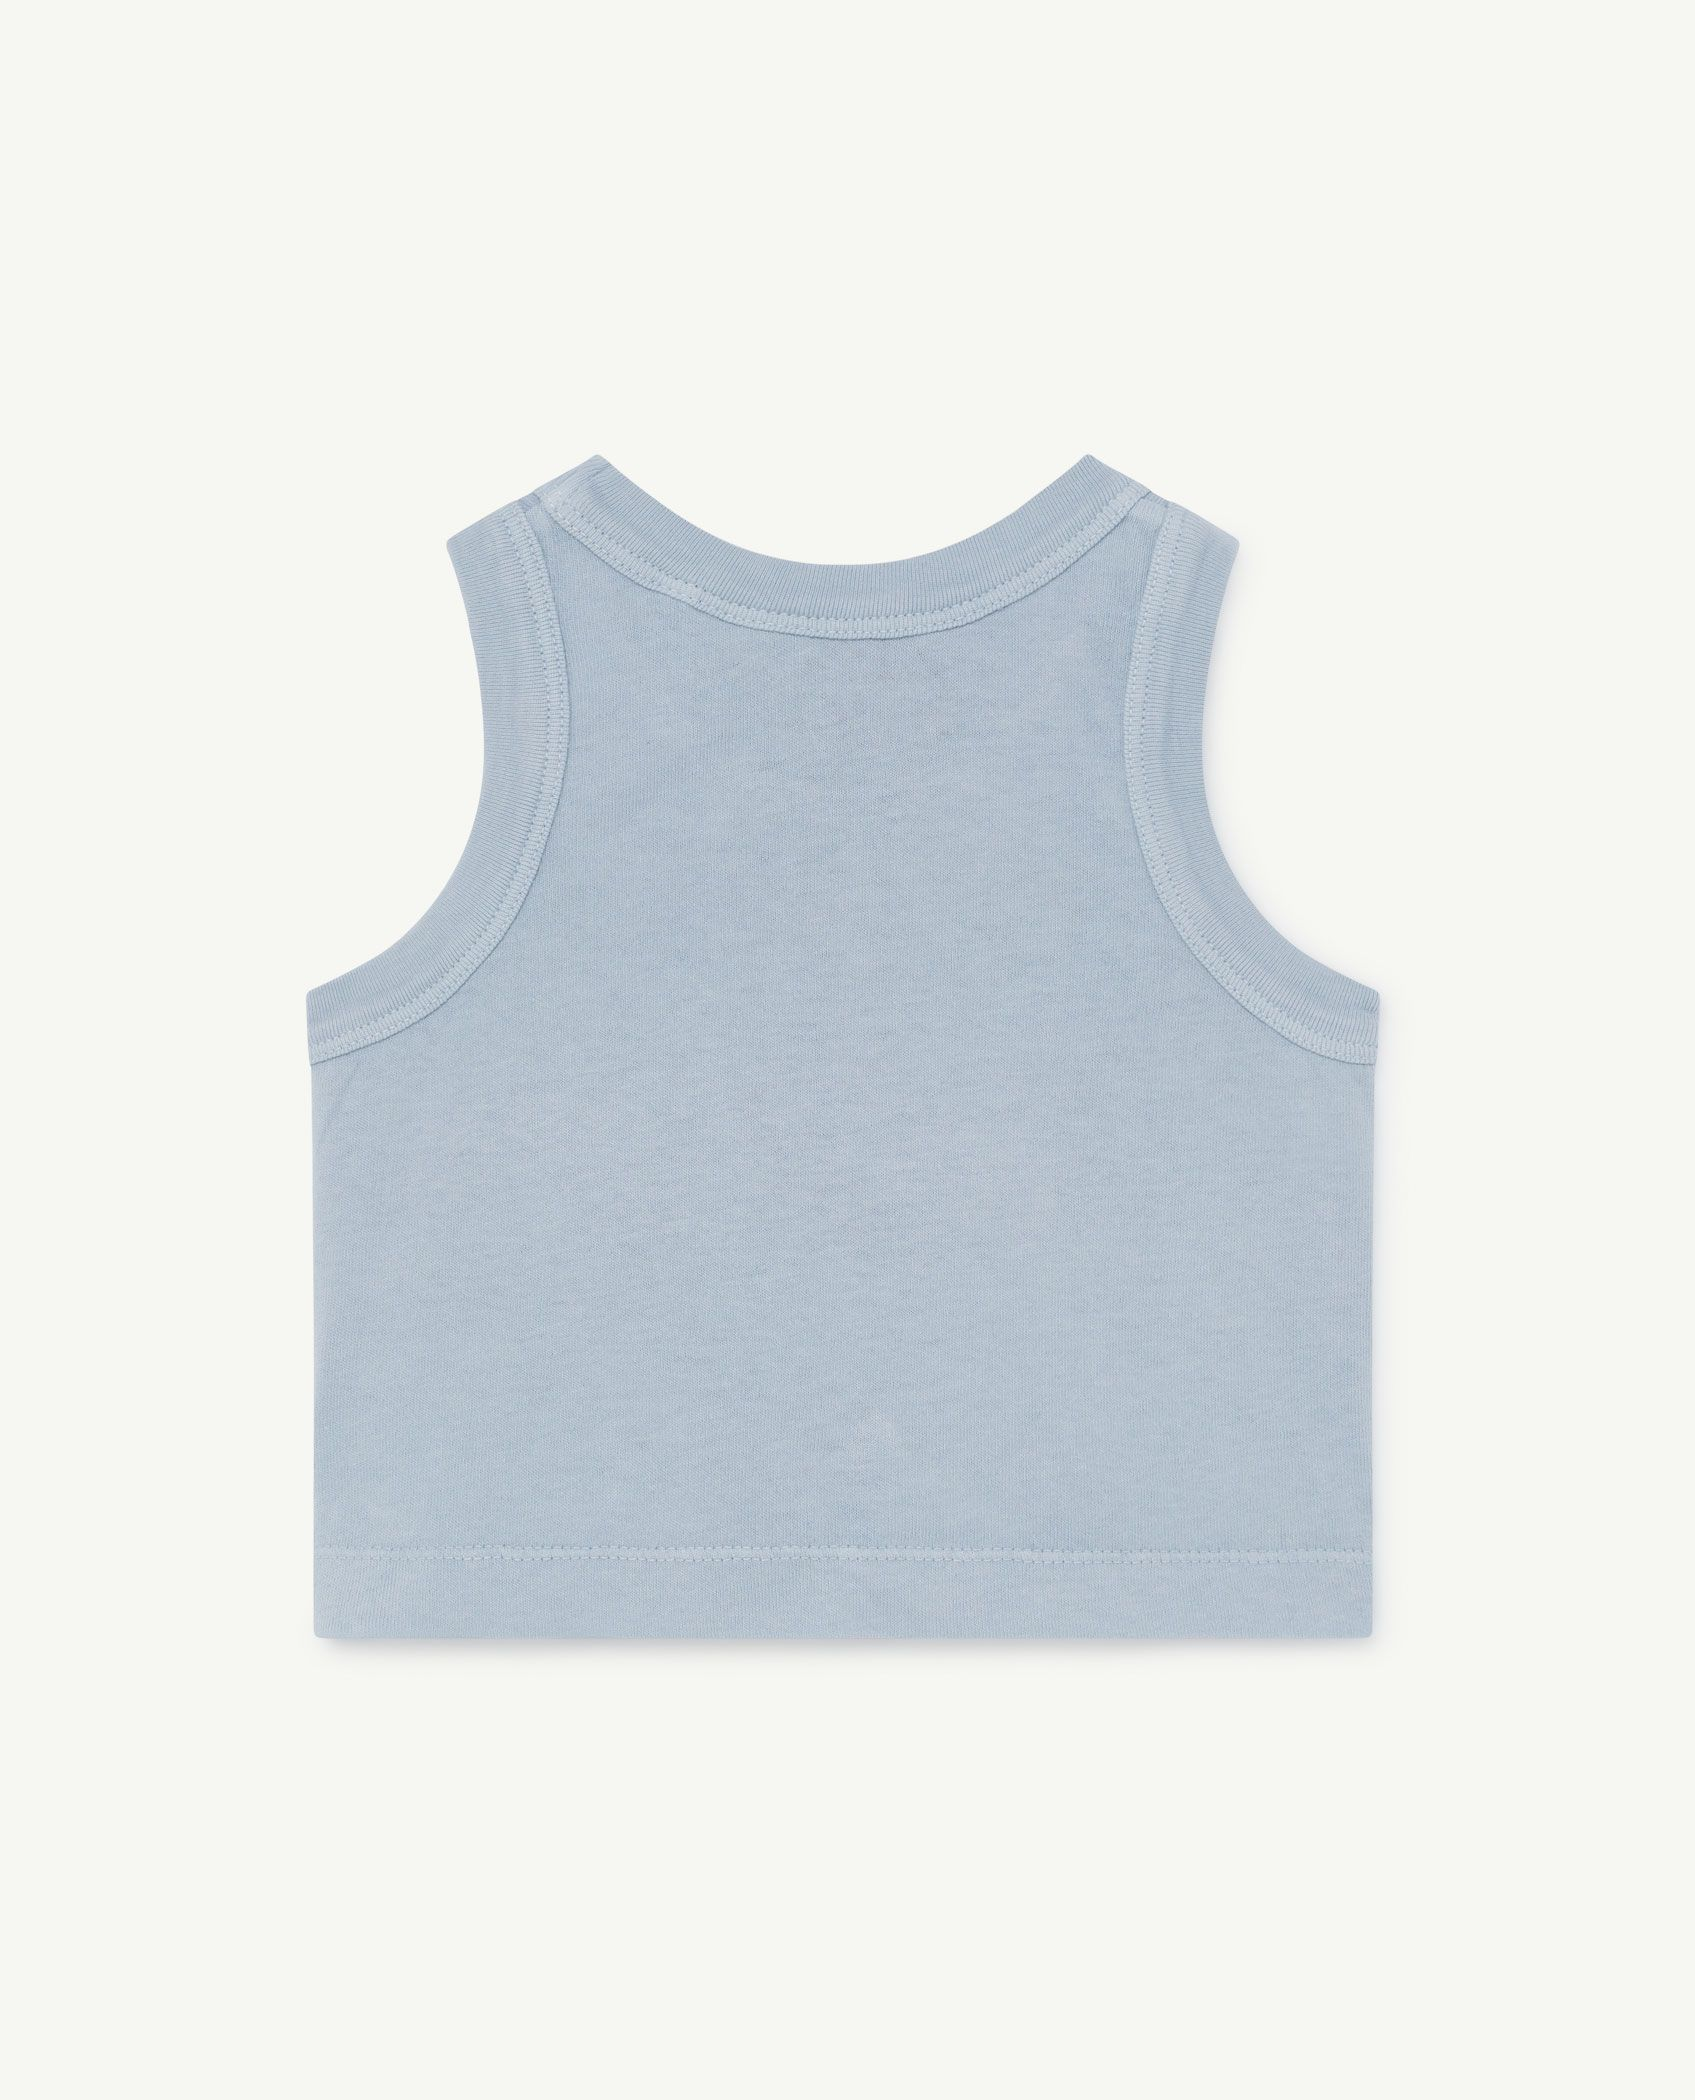 Pale Blue Frog Baby T-Shirt img-2